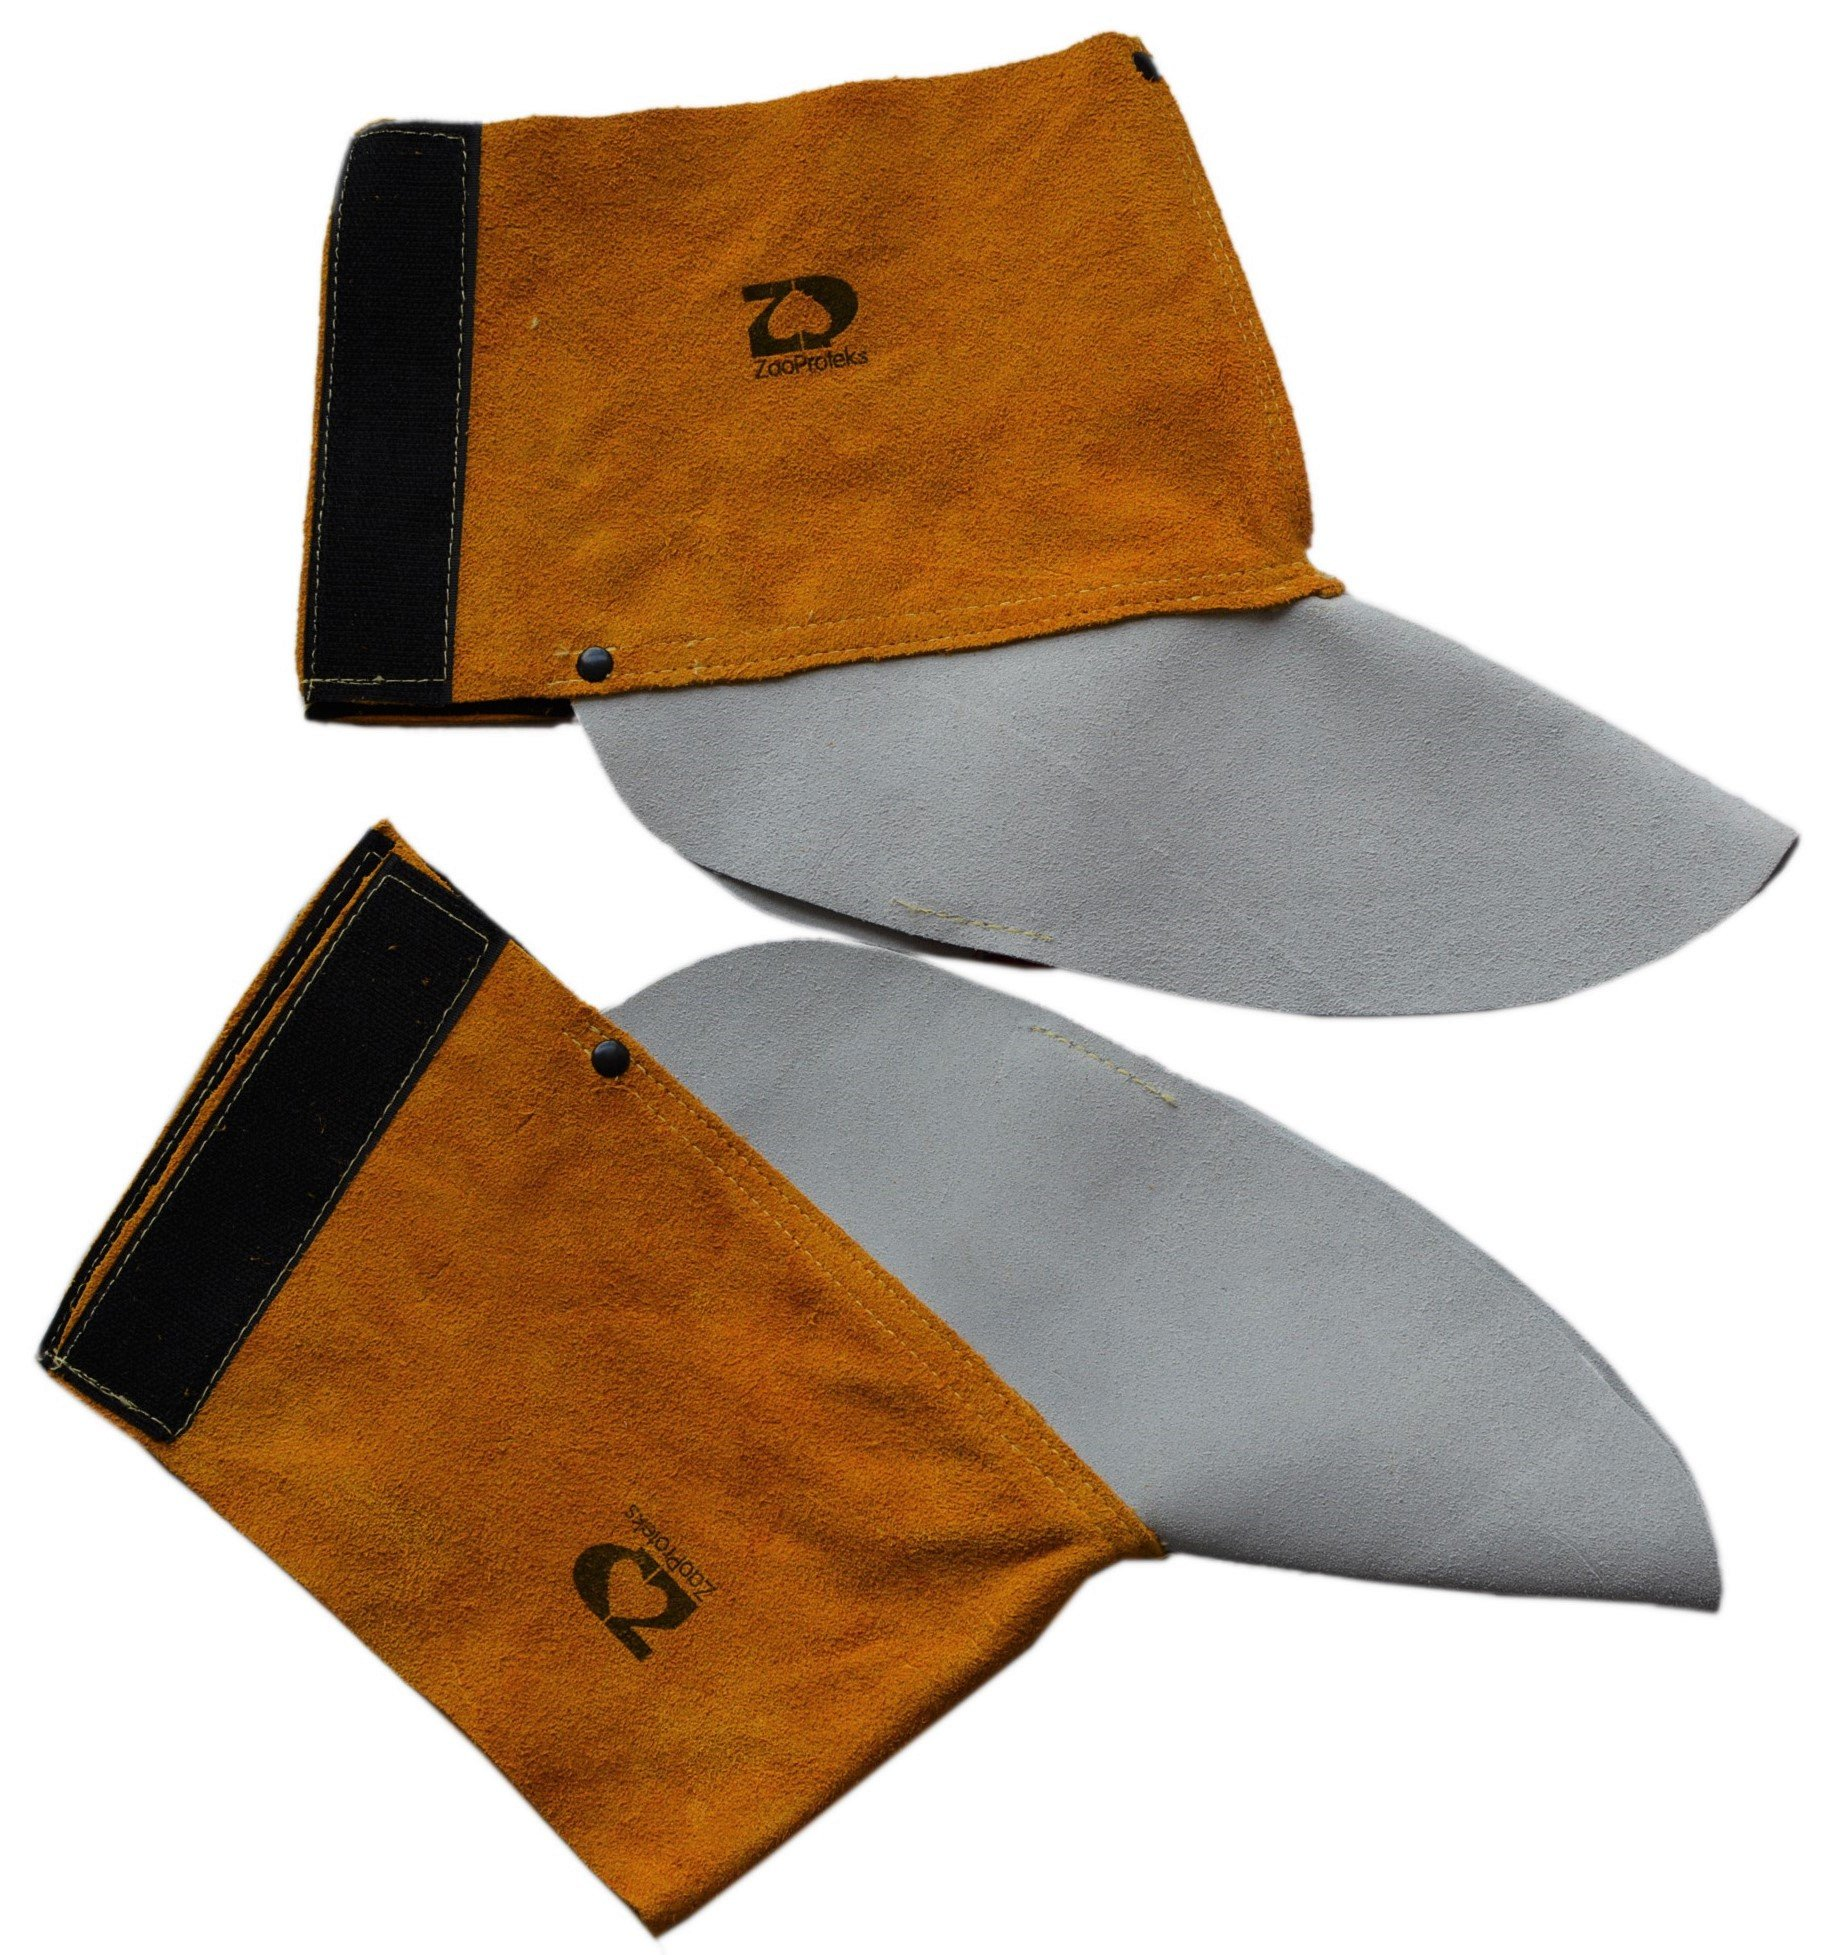 ZaoProteks ZP3002 Cowhide Leather Heat and Abrasion Resistant Welding Spats, Shoe/Boot Protectors,Boot/Shoe Cover